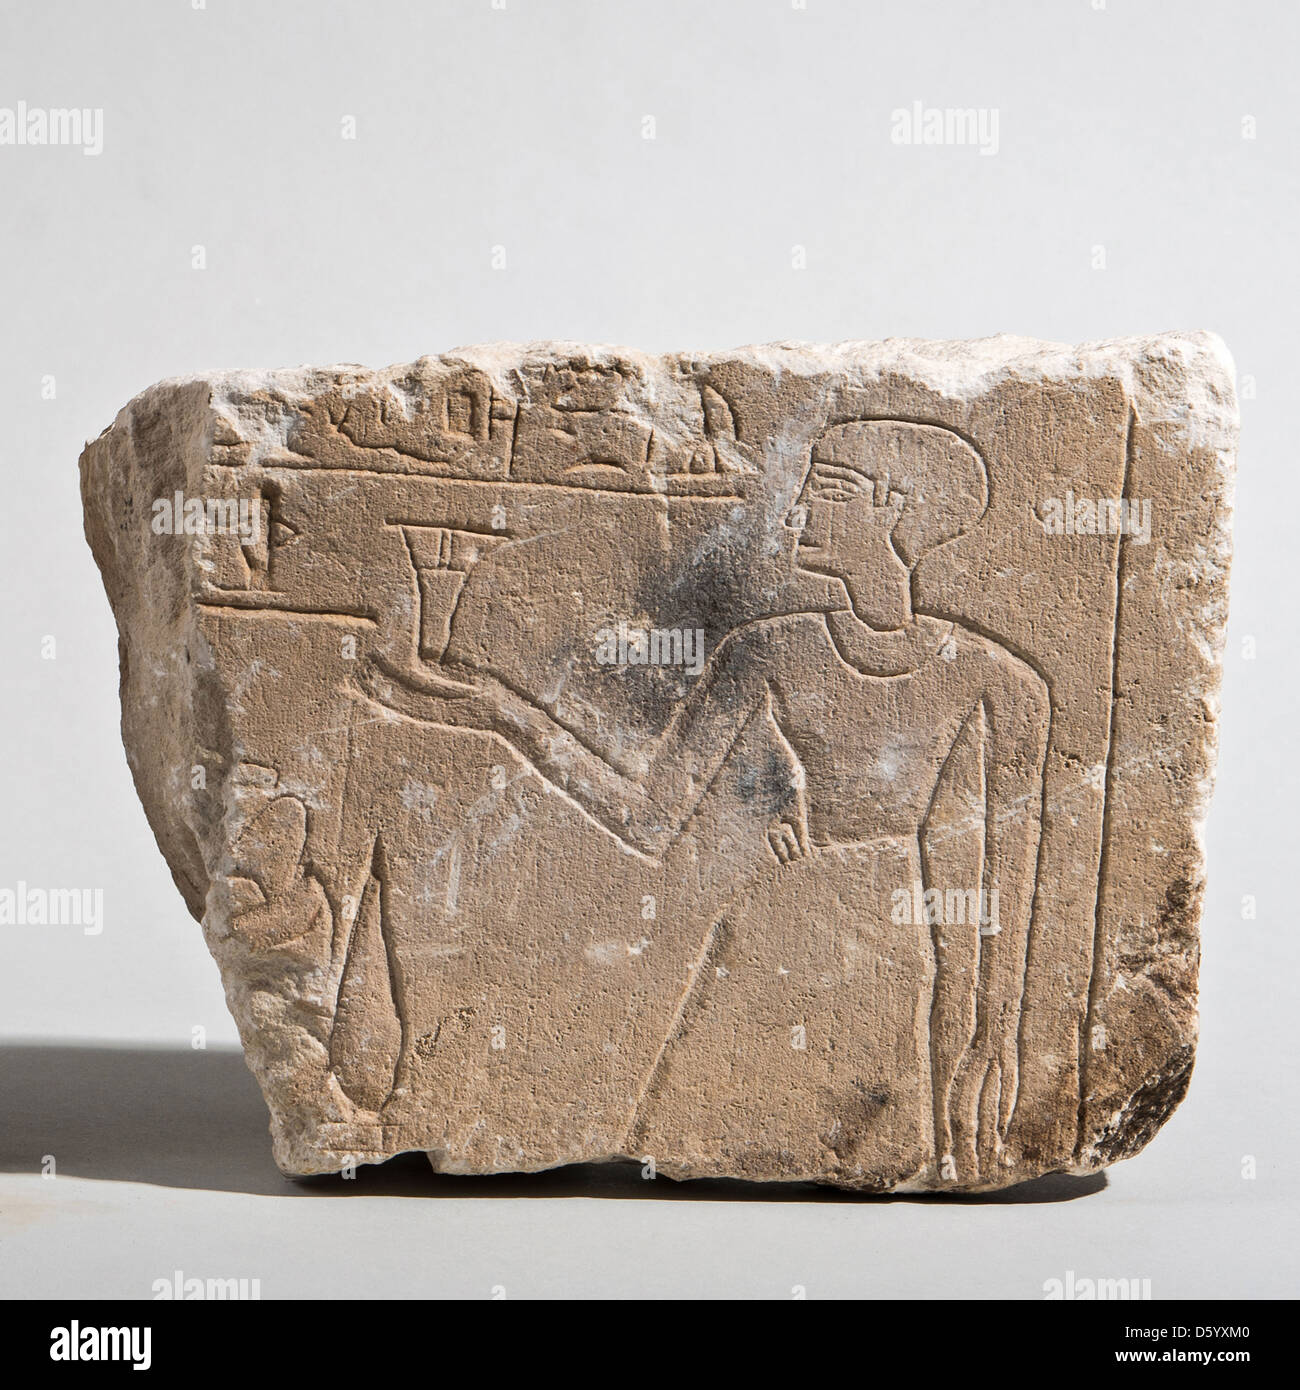 An Egyptian Limestone fragment of a relief 1st millennium BCE - Stock Image